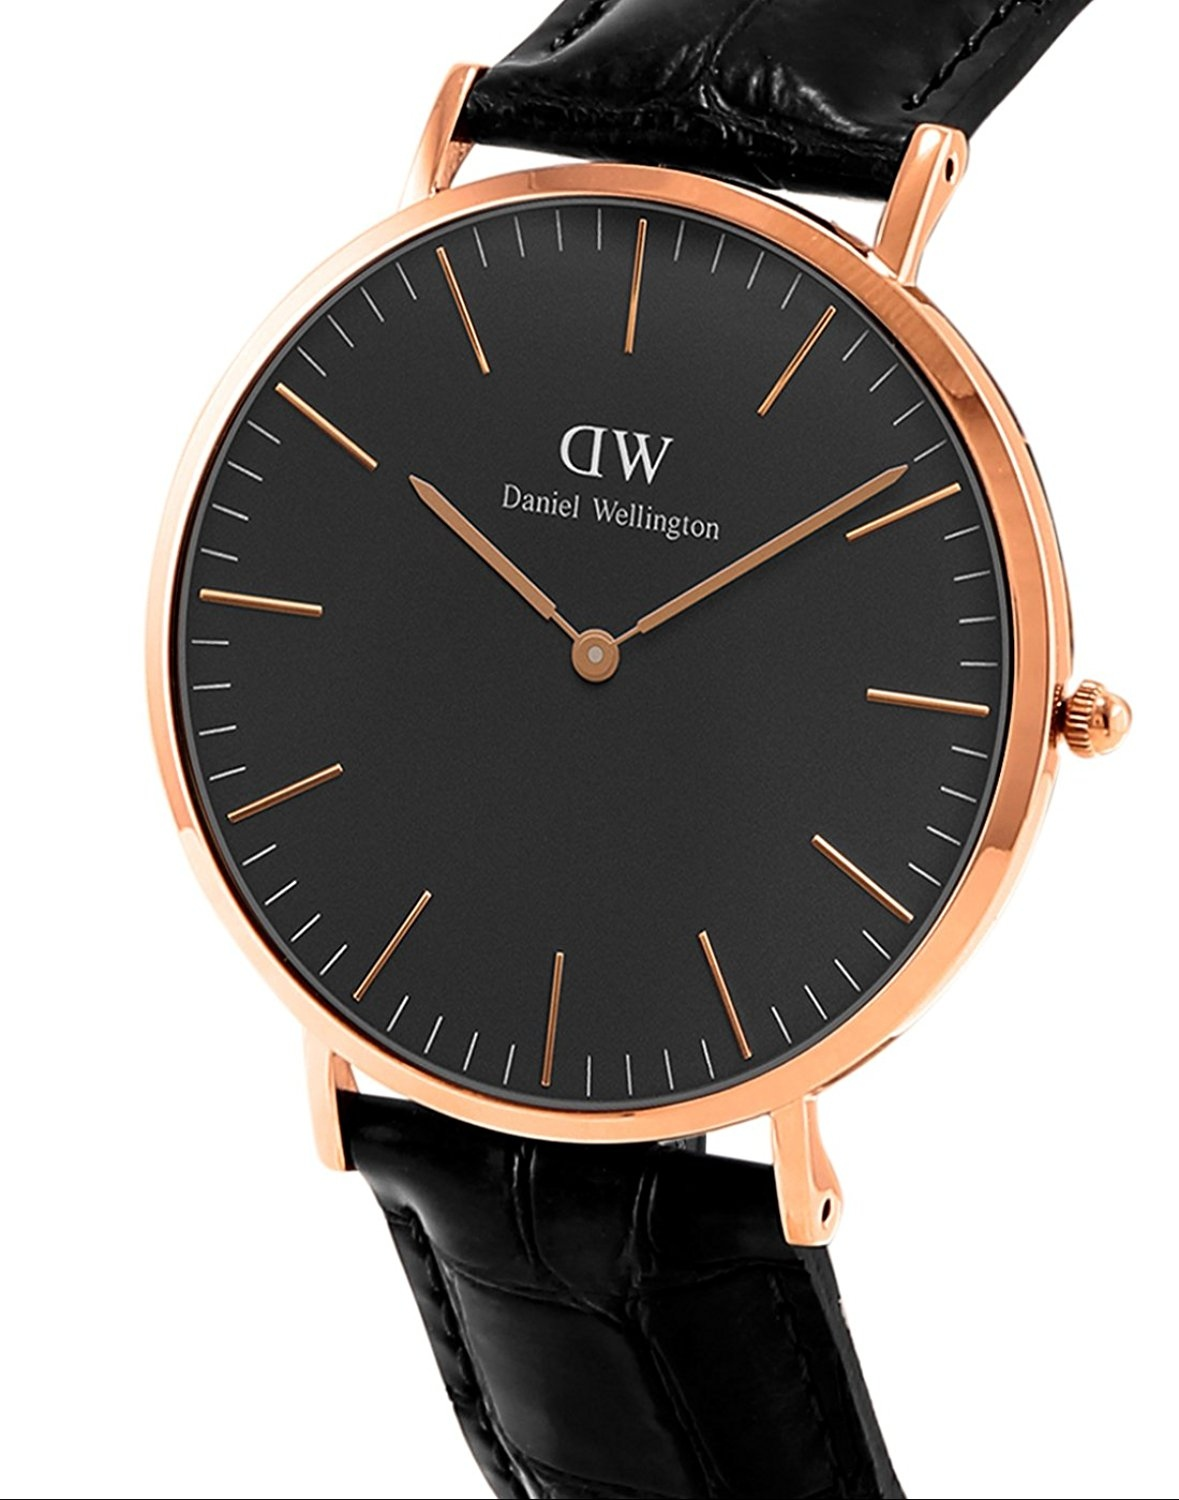 The clean design of the face makes it possible to pair each one with either an elegant leather strap or a colorful and casual nato strap.